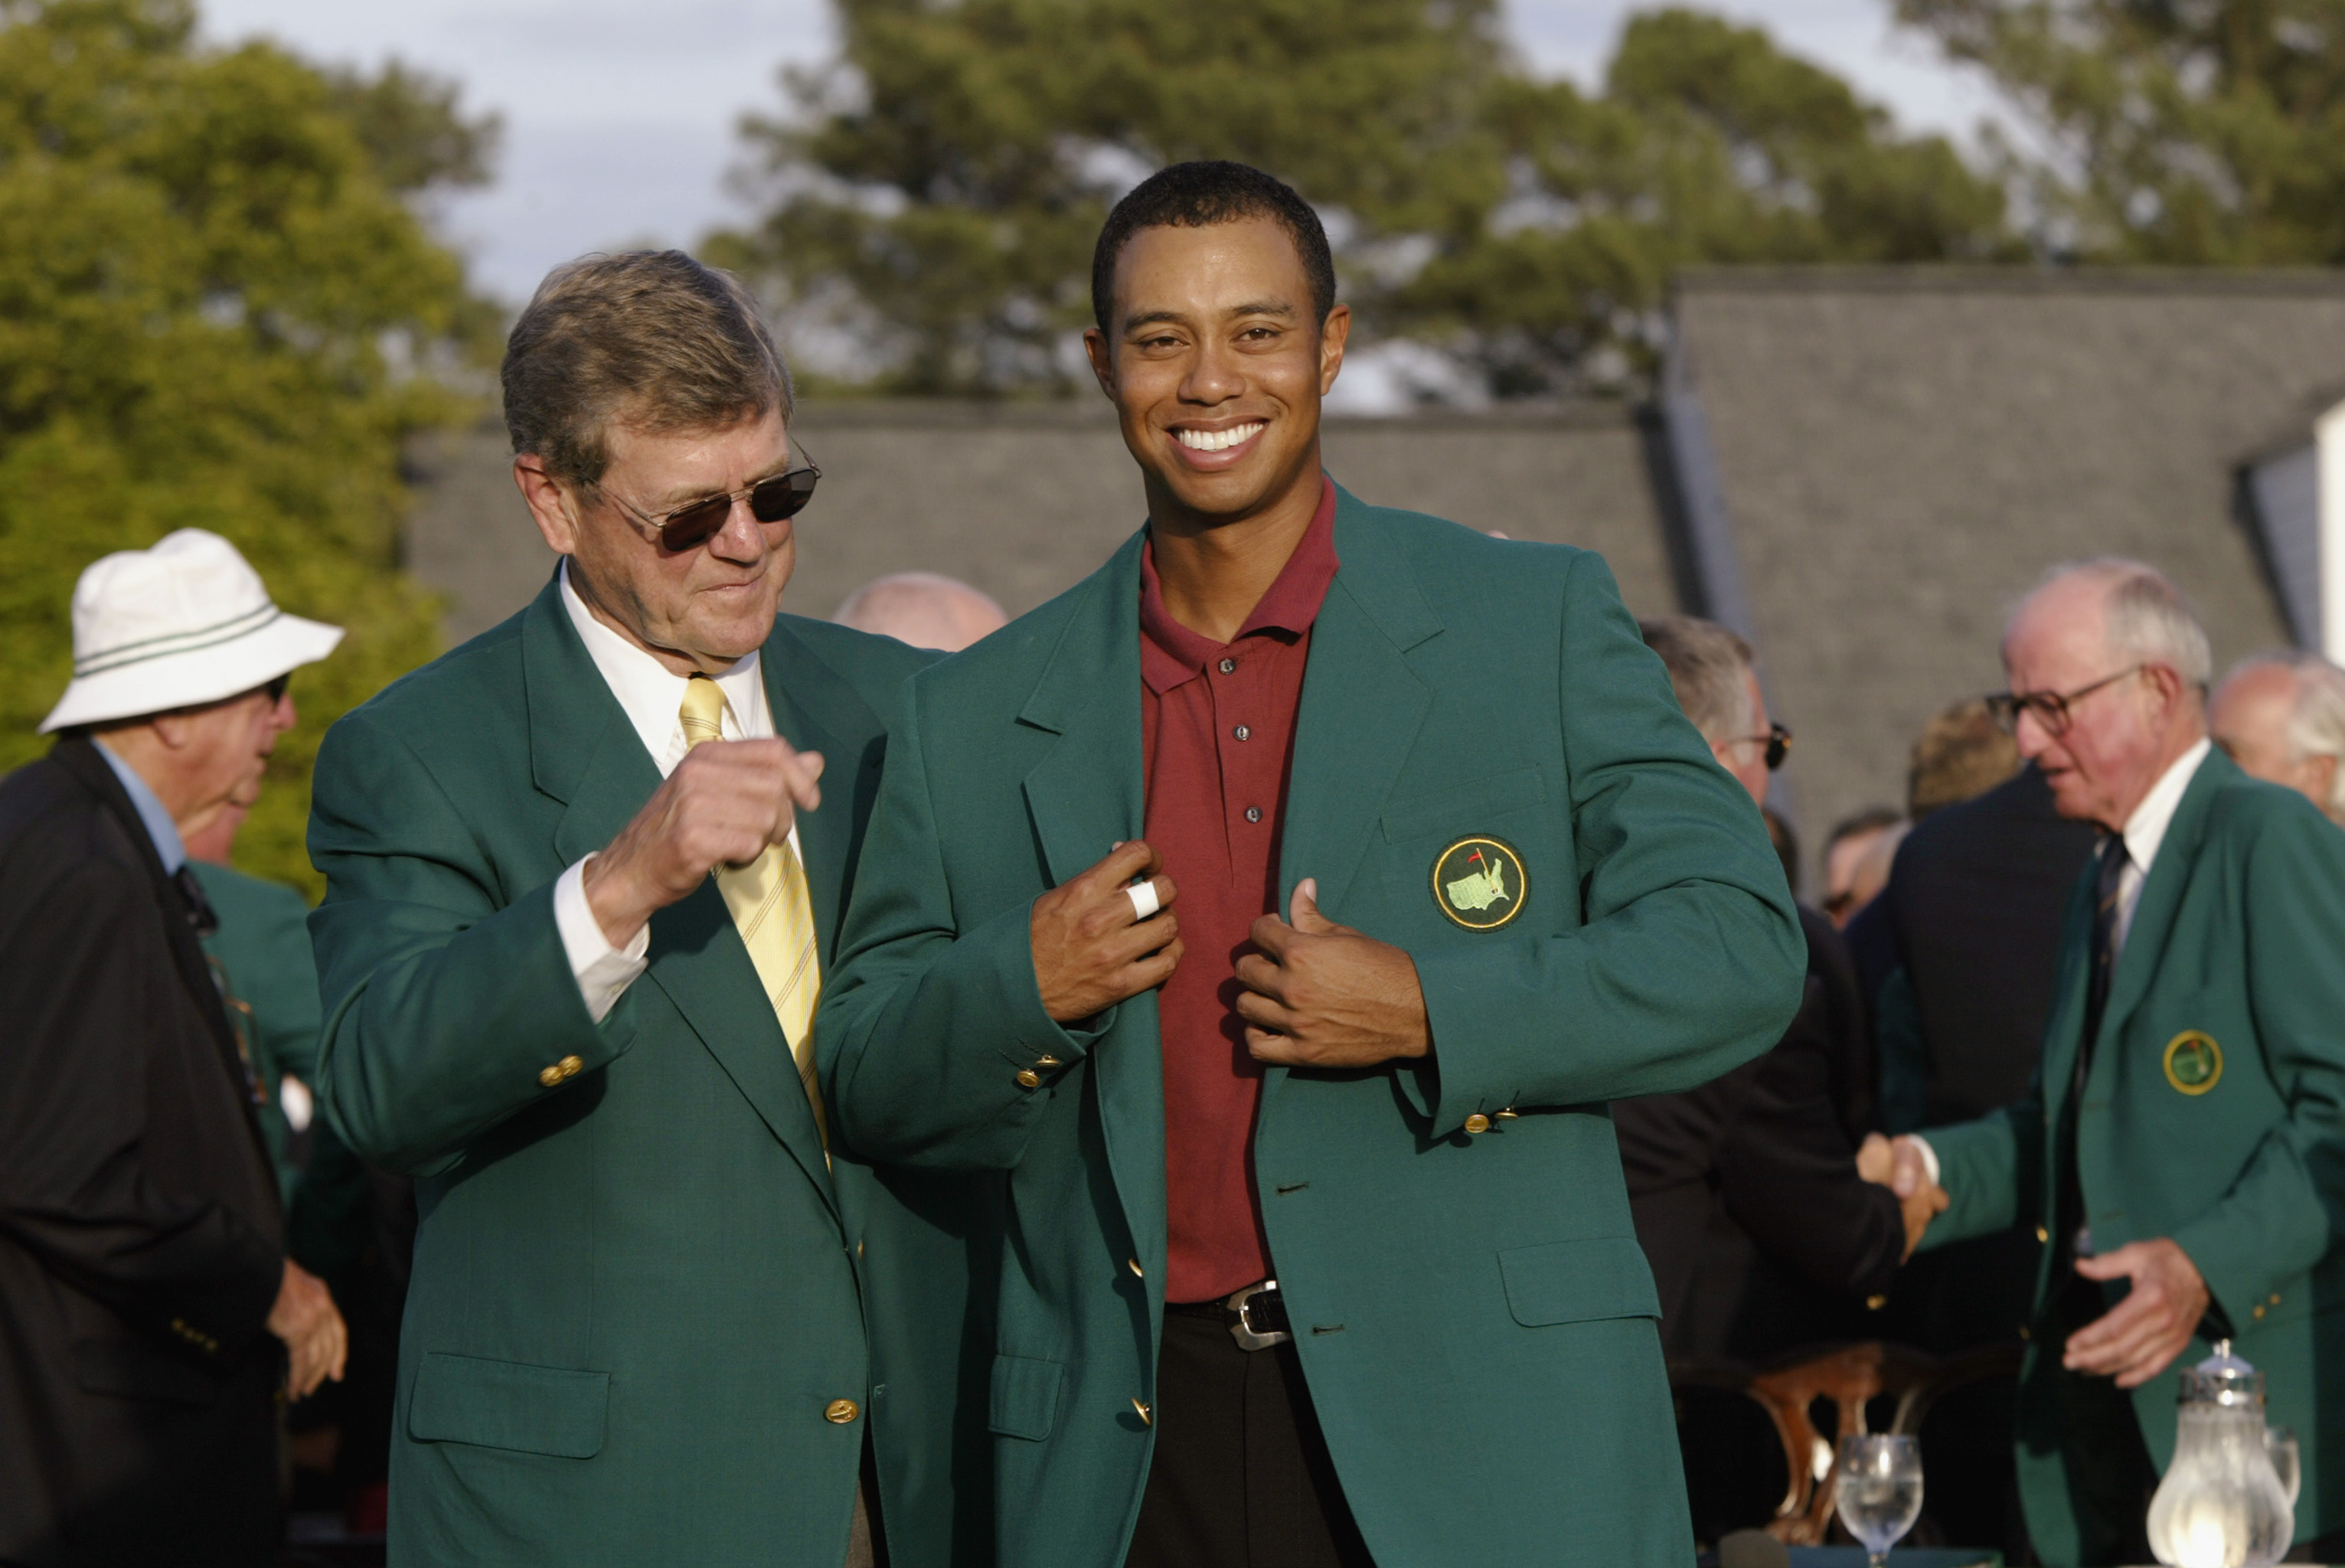 Chairman Hootie Johnson presents the green jacket to Tiger Woods